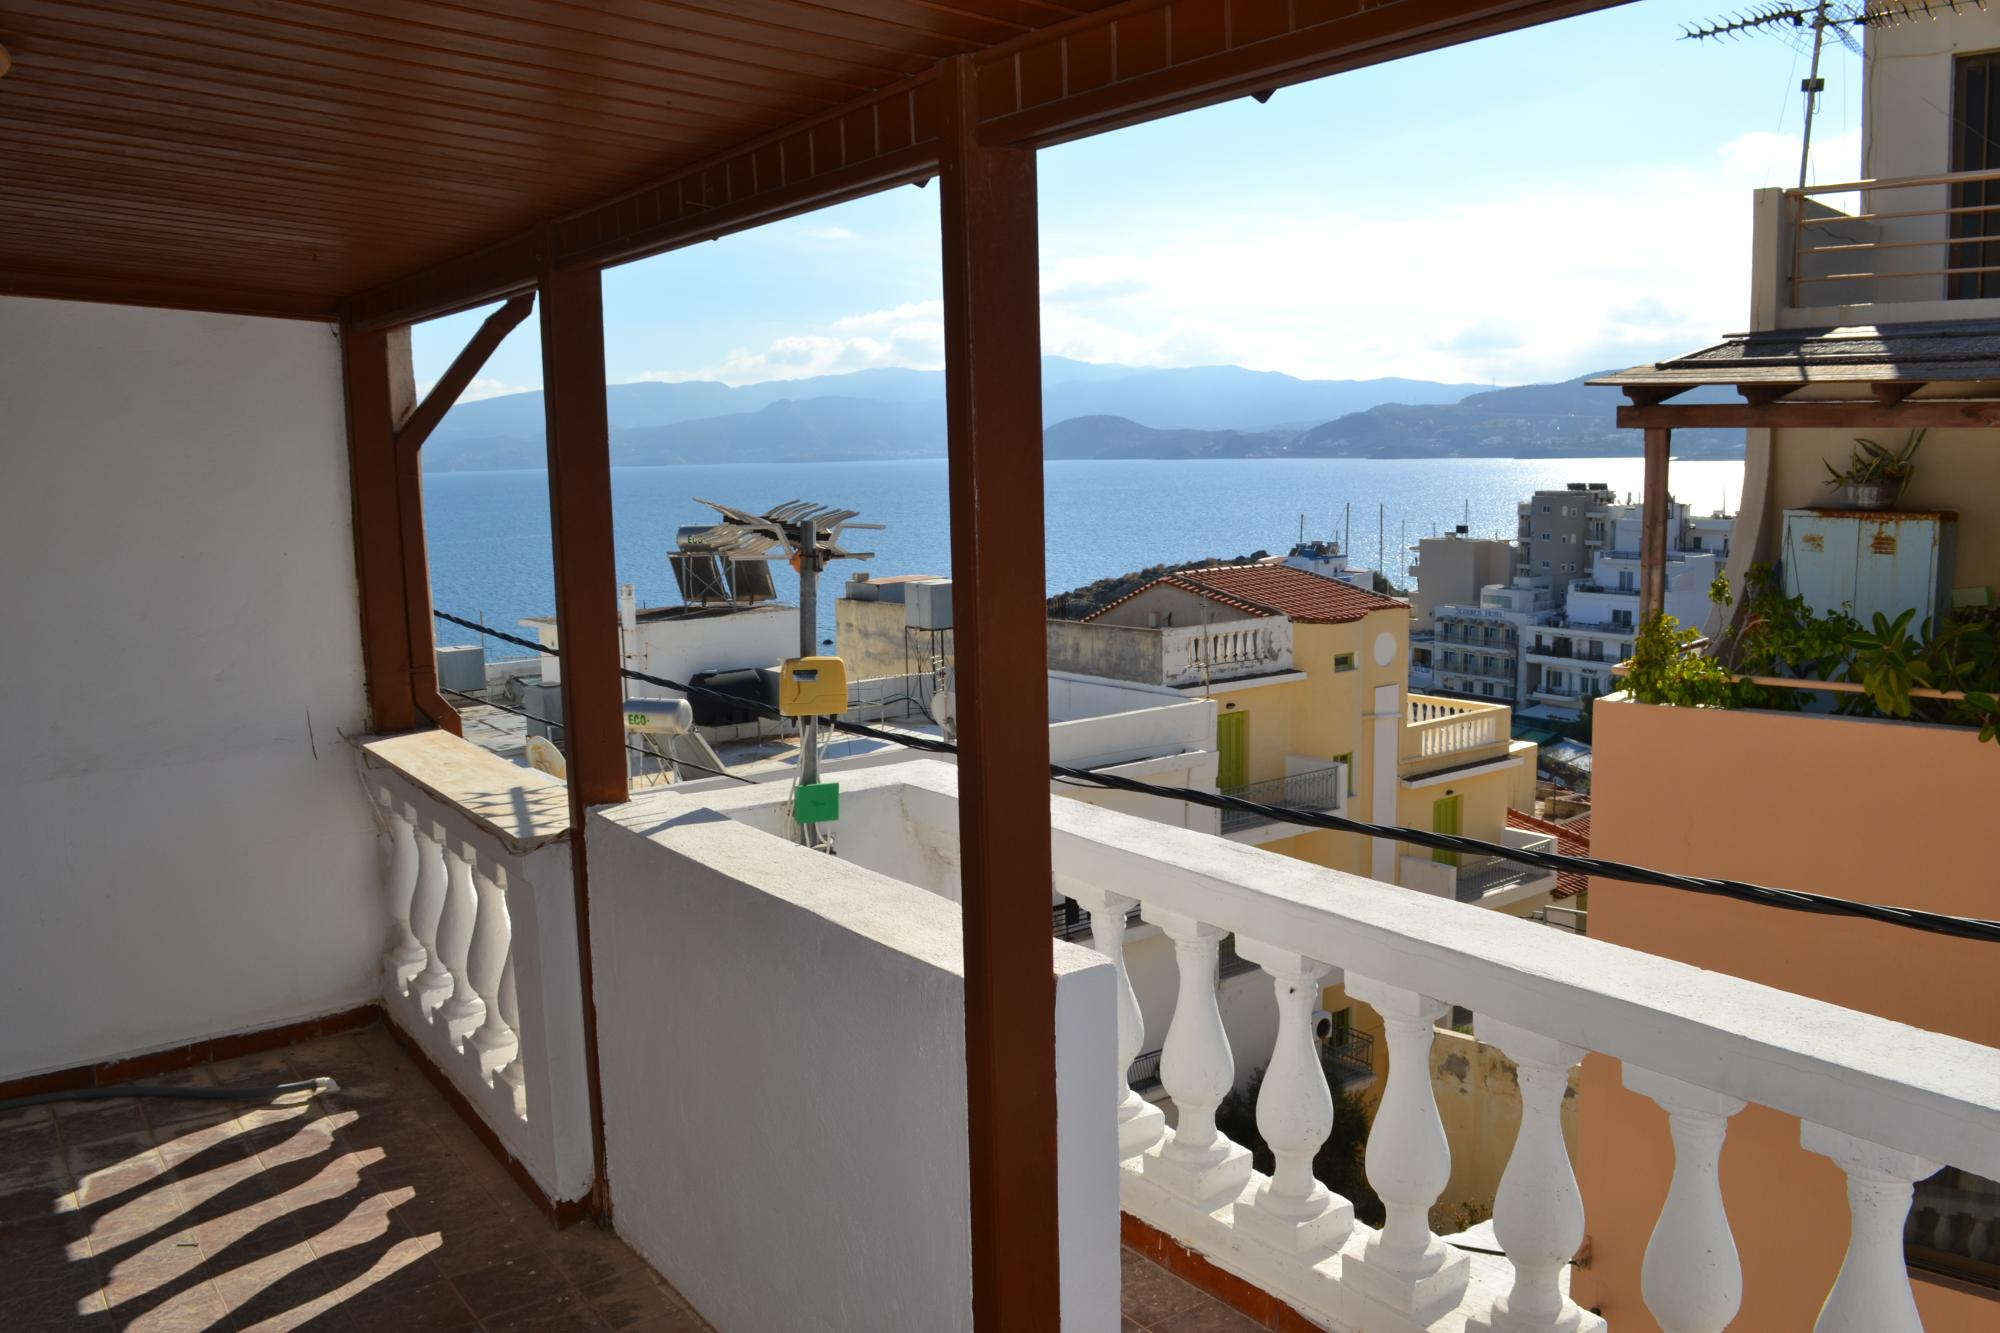 Unfinished apartment building for sale in central position, close to beach, sea views. Agios Nikolaos.